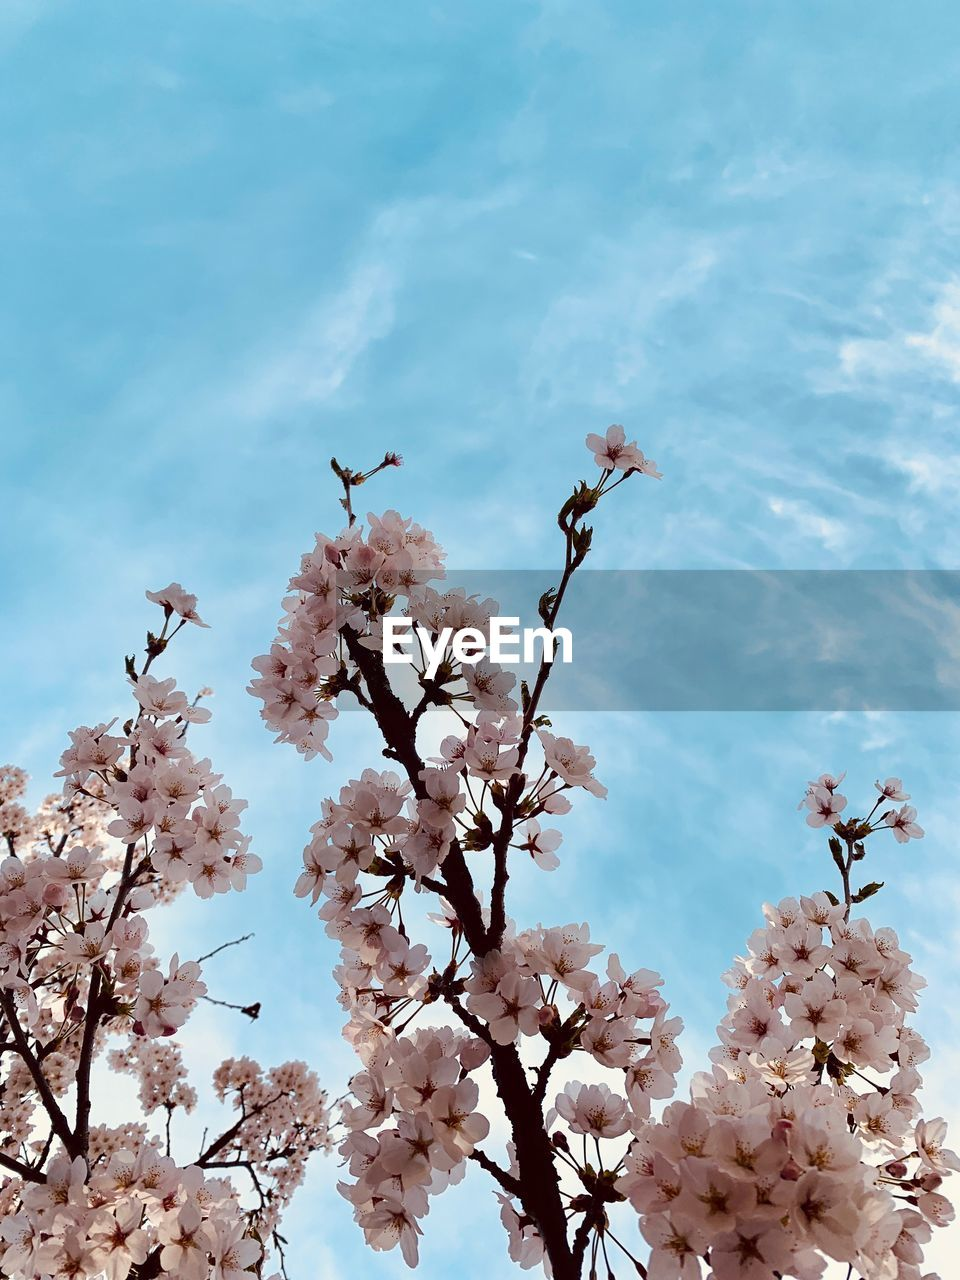 plant, flower, flowering plant, growth, fragility, vulnerability, beauty in nature, freshness, nature, tree, blossom, cloud - sky, springtime, sky, day, low angle view, no people, petal, branch, cherry blossom, outdoors, flower head, cherry tree